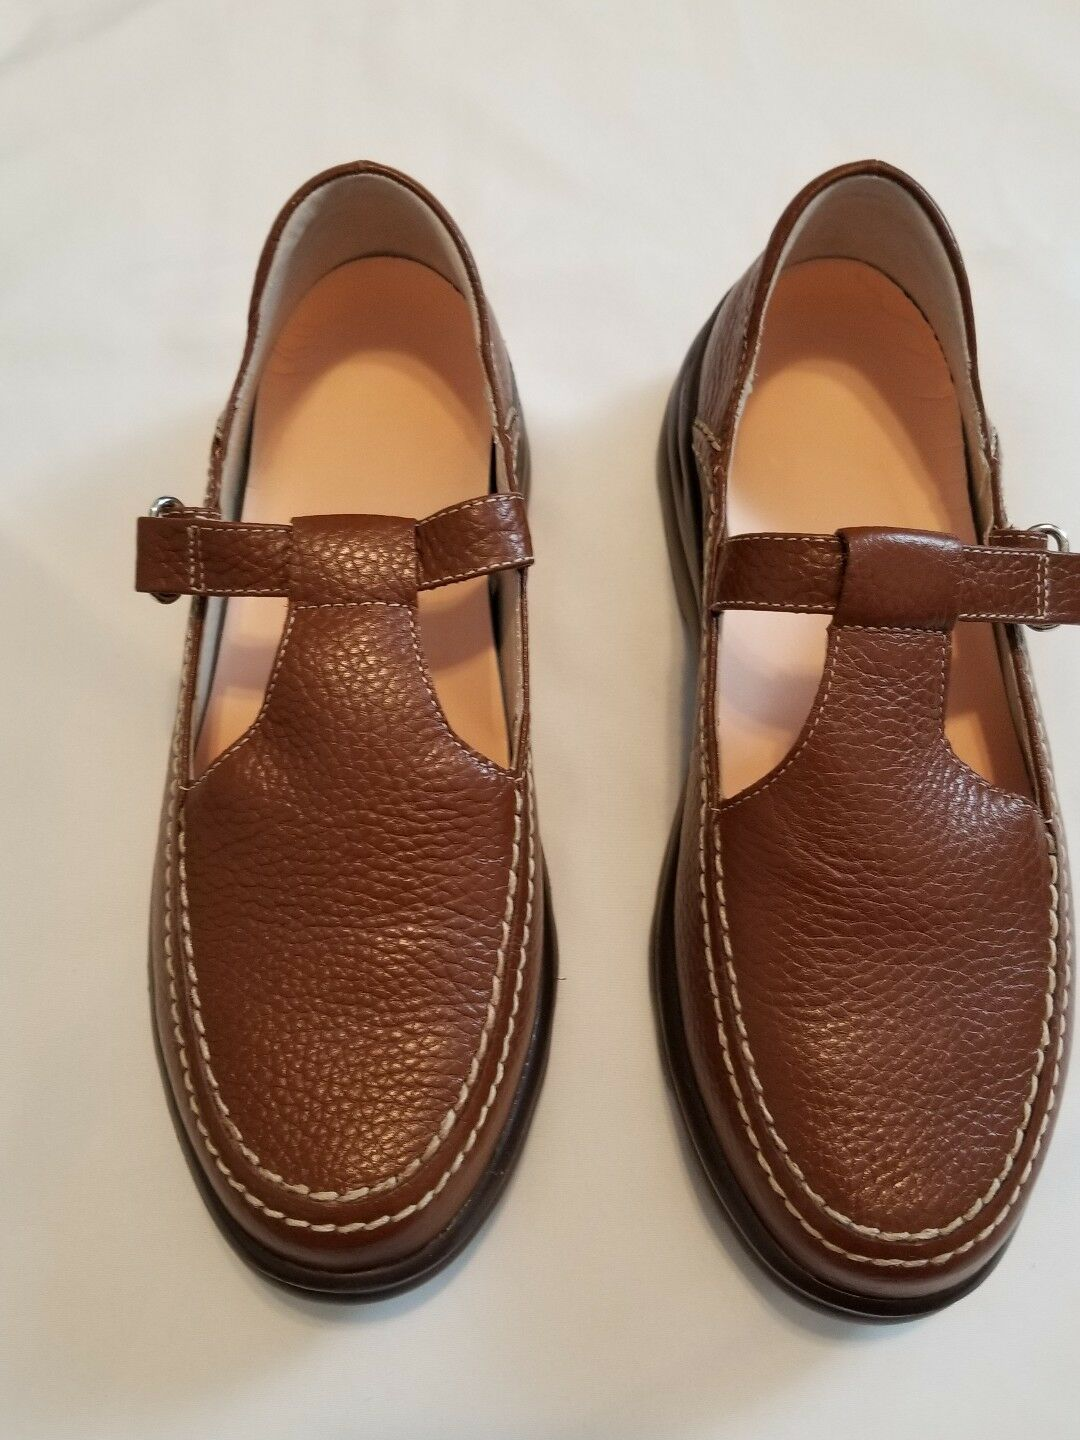 Dr Comfort Lu Lu Women's Dress shoes Chestnut 7 Med